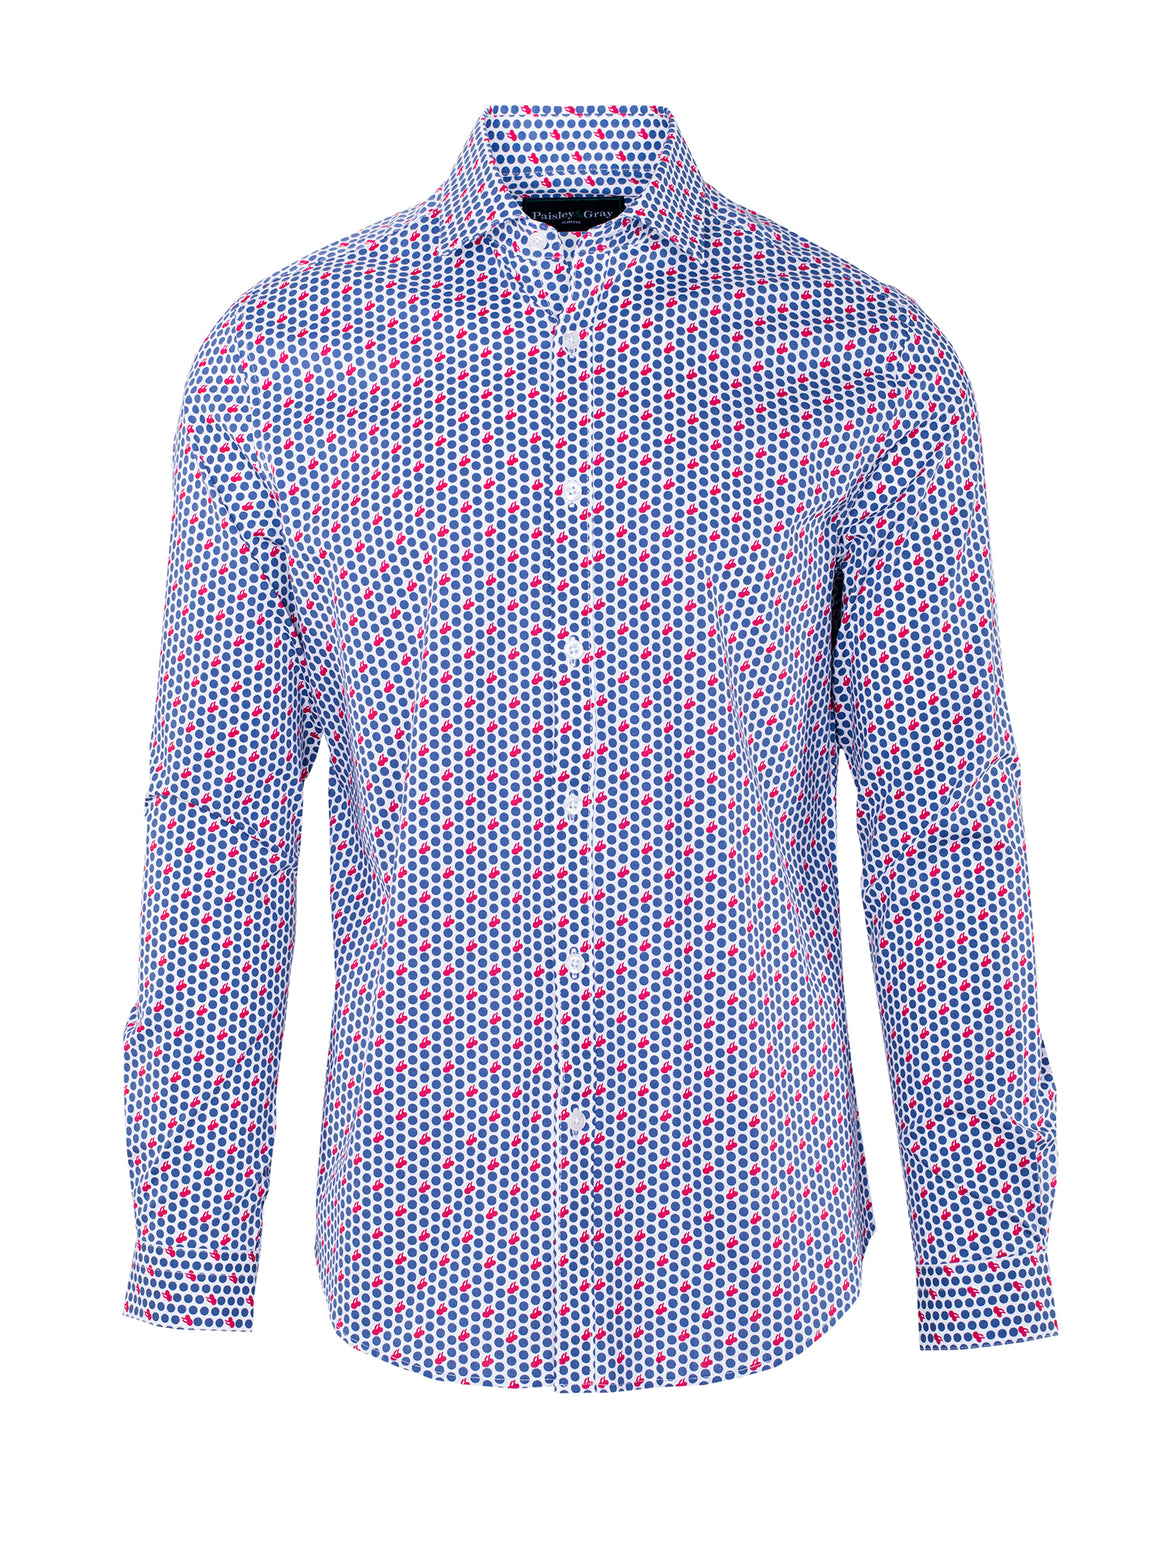 Slim Fit Cherry Pop Shirt - Red White & Blue Print